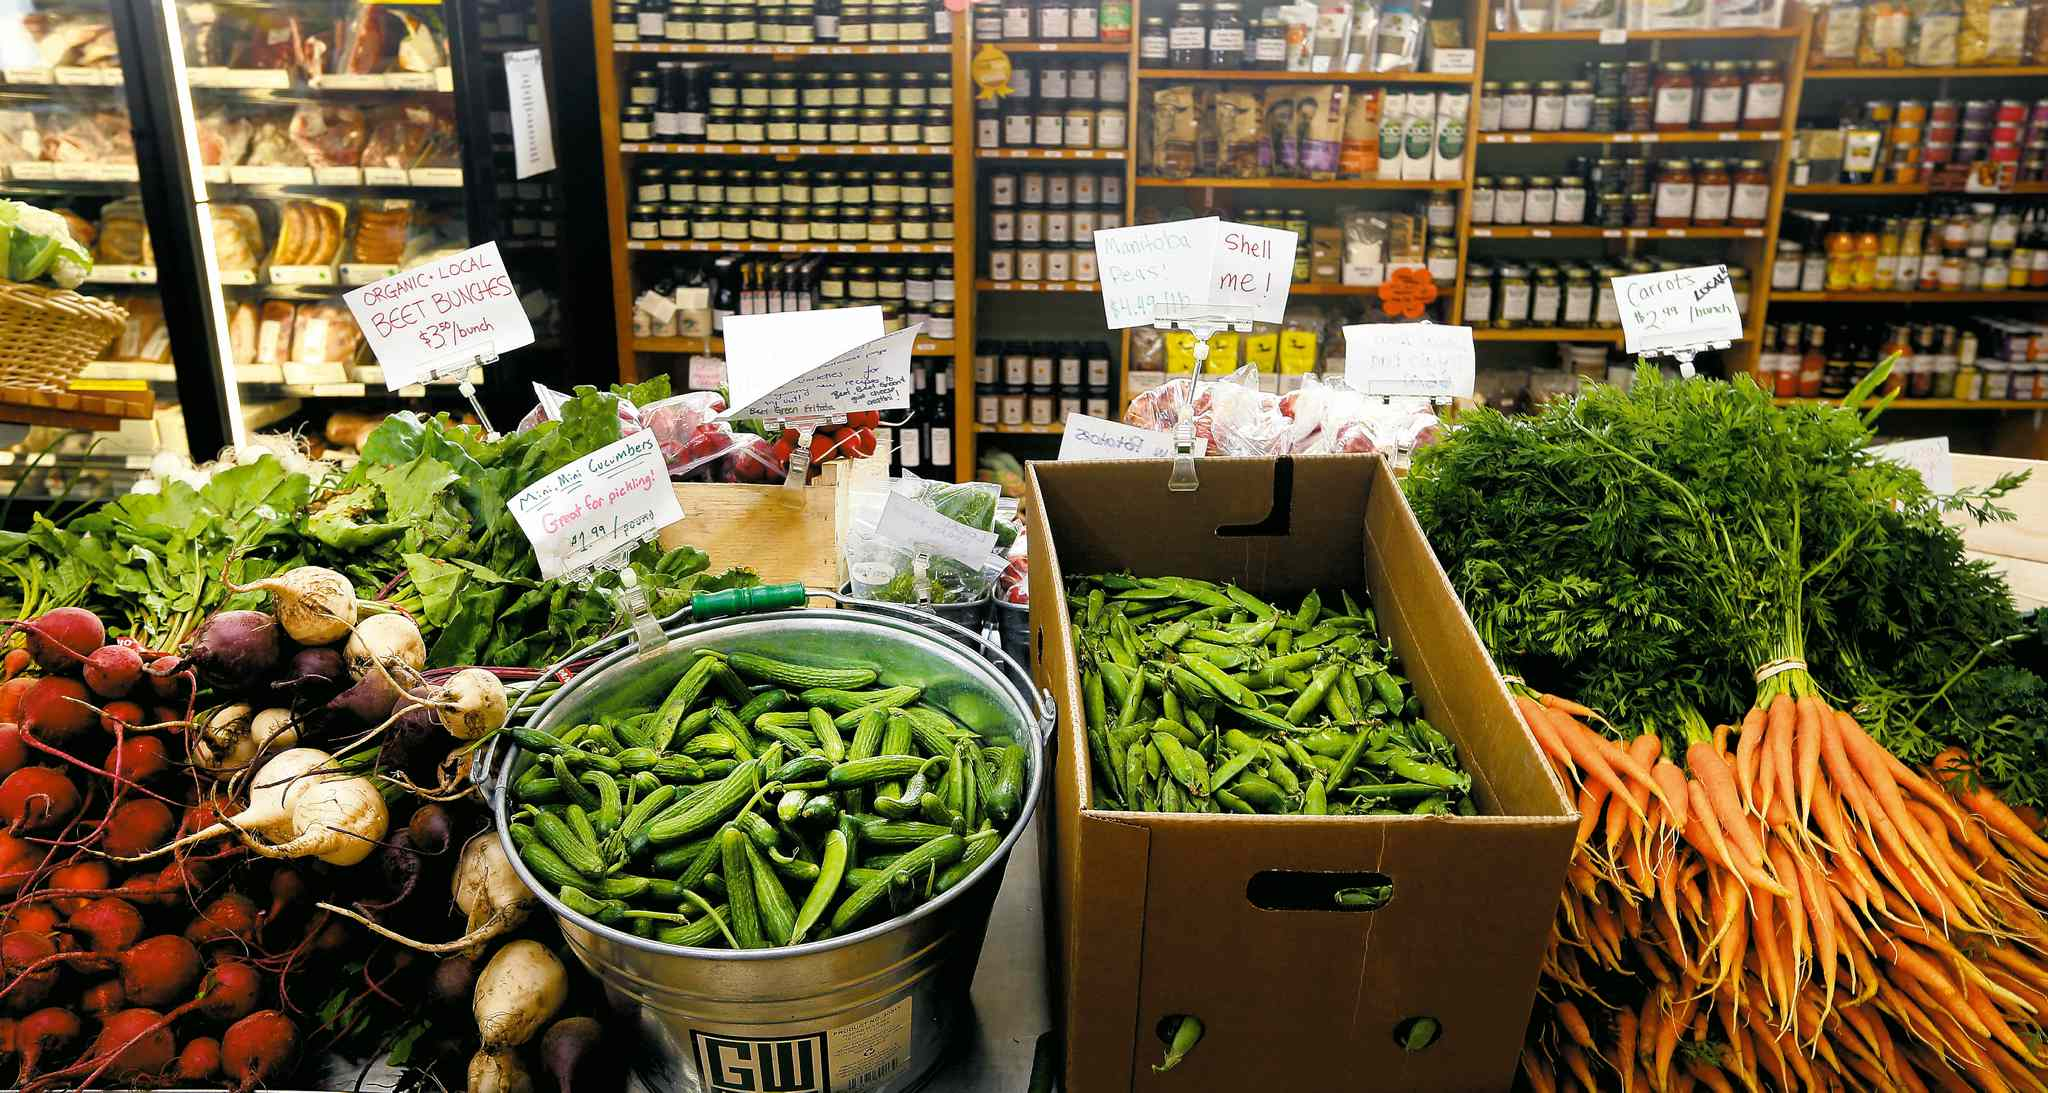 Crampton's Market has been selling local organic foods and ethically raised meat for 17 years.